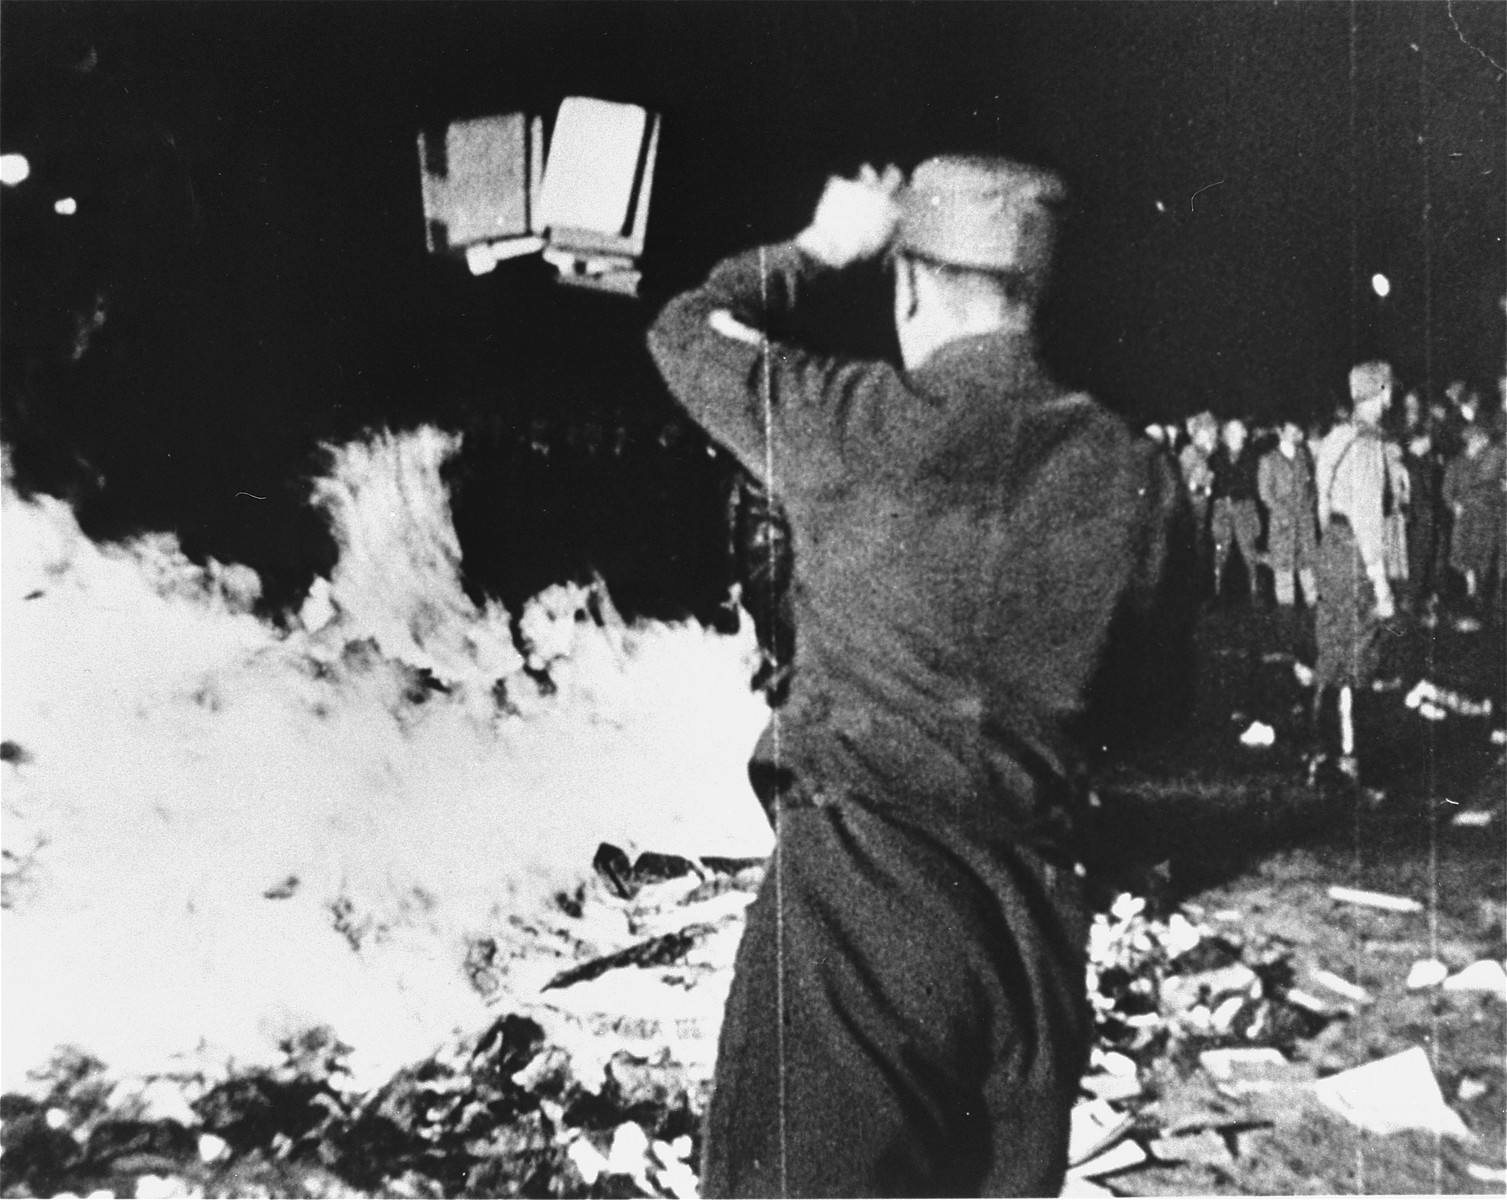 http://upload.wikimedia.org/wikipedia/commons/2/2b/1933-may-10-berlin-book-burning.JPG